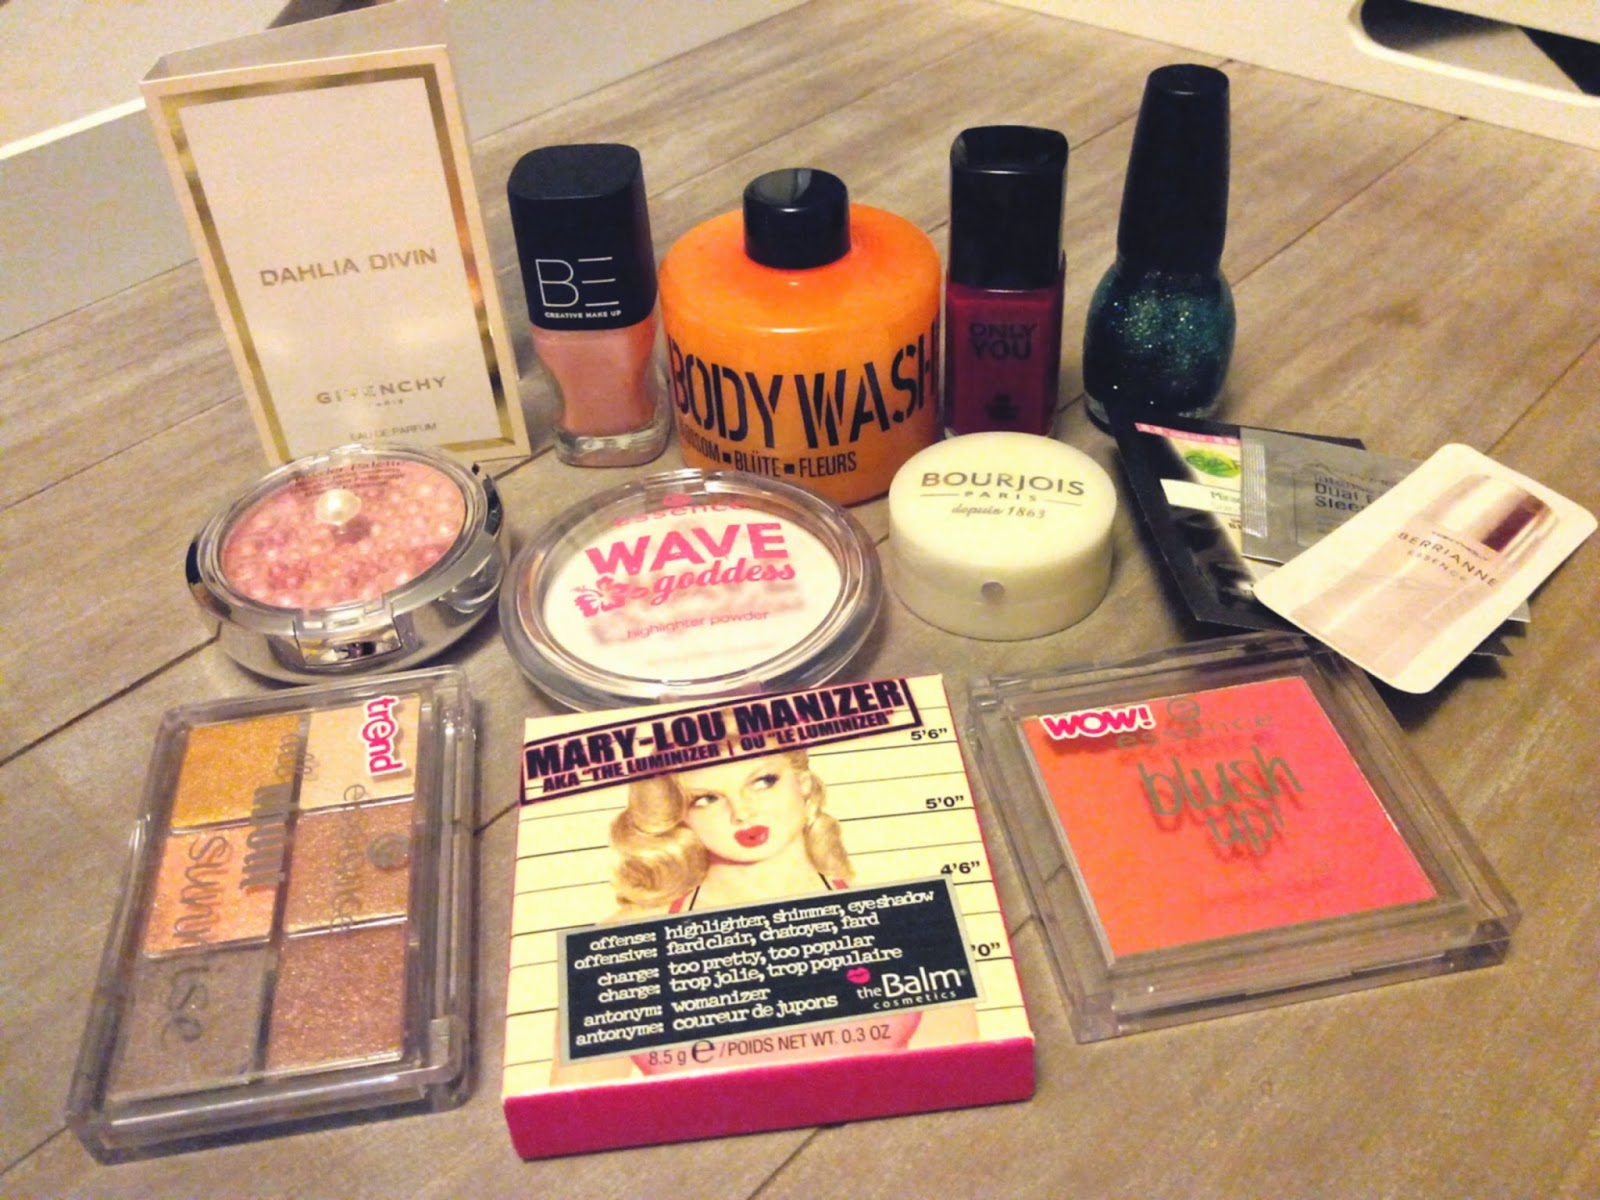 makeup, vernis, concours, palette, bullelodie